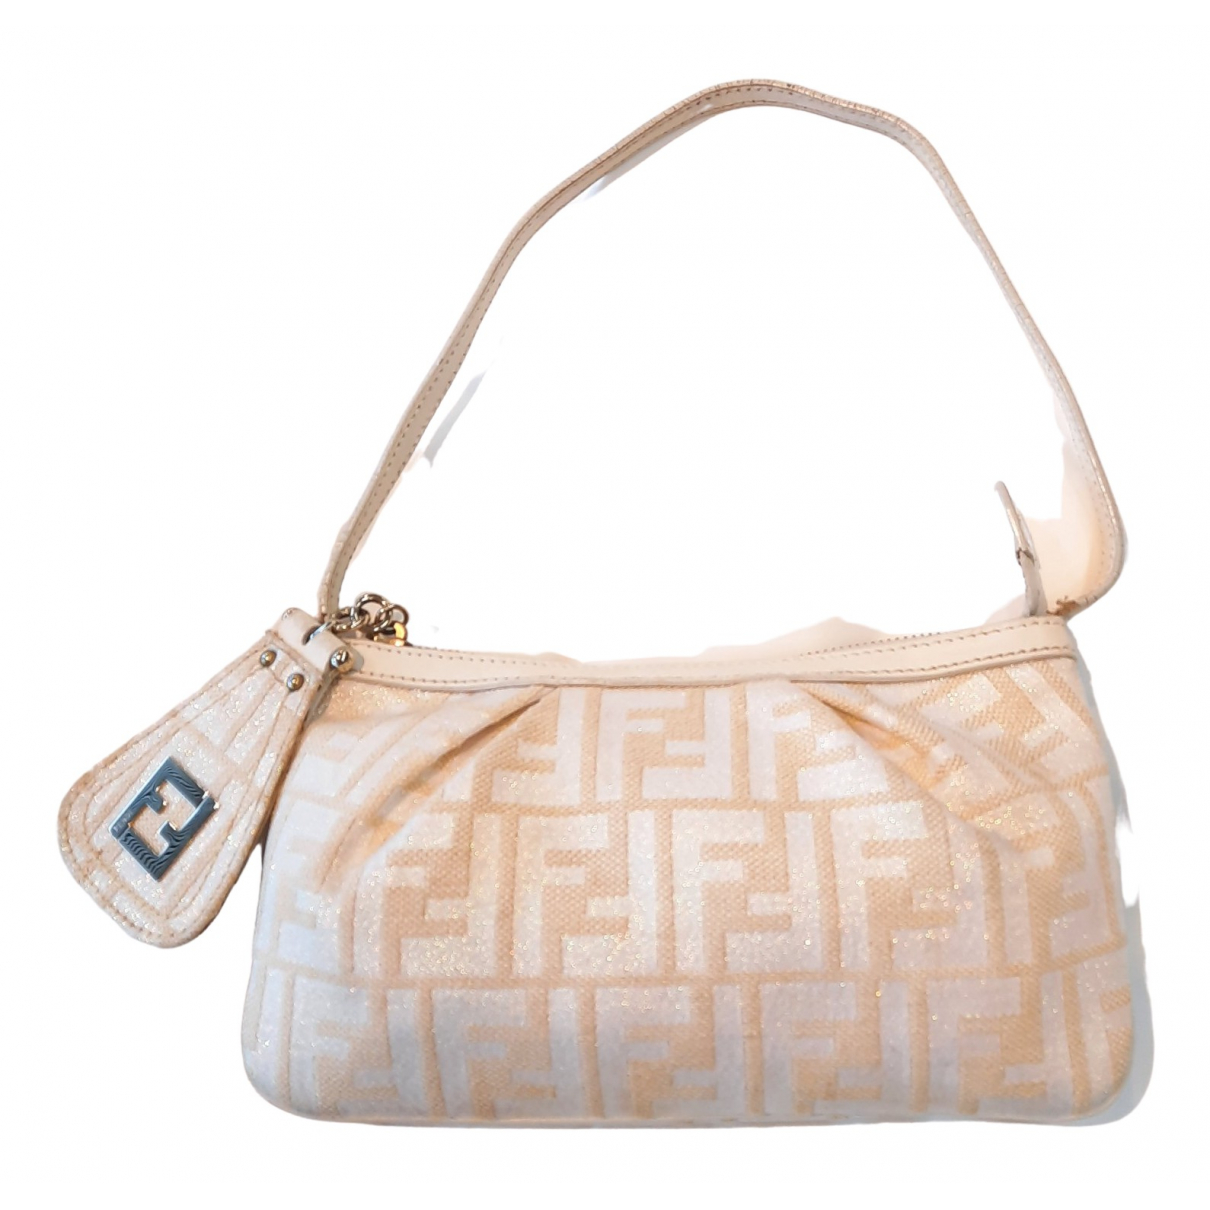 Fendi \N Clutch in  Weiss Leinen